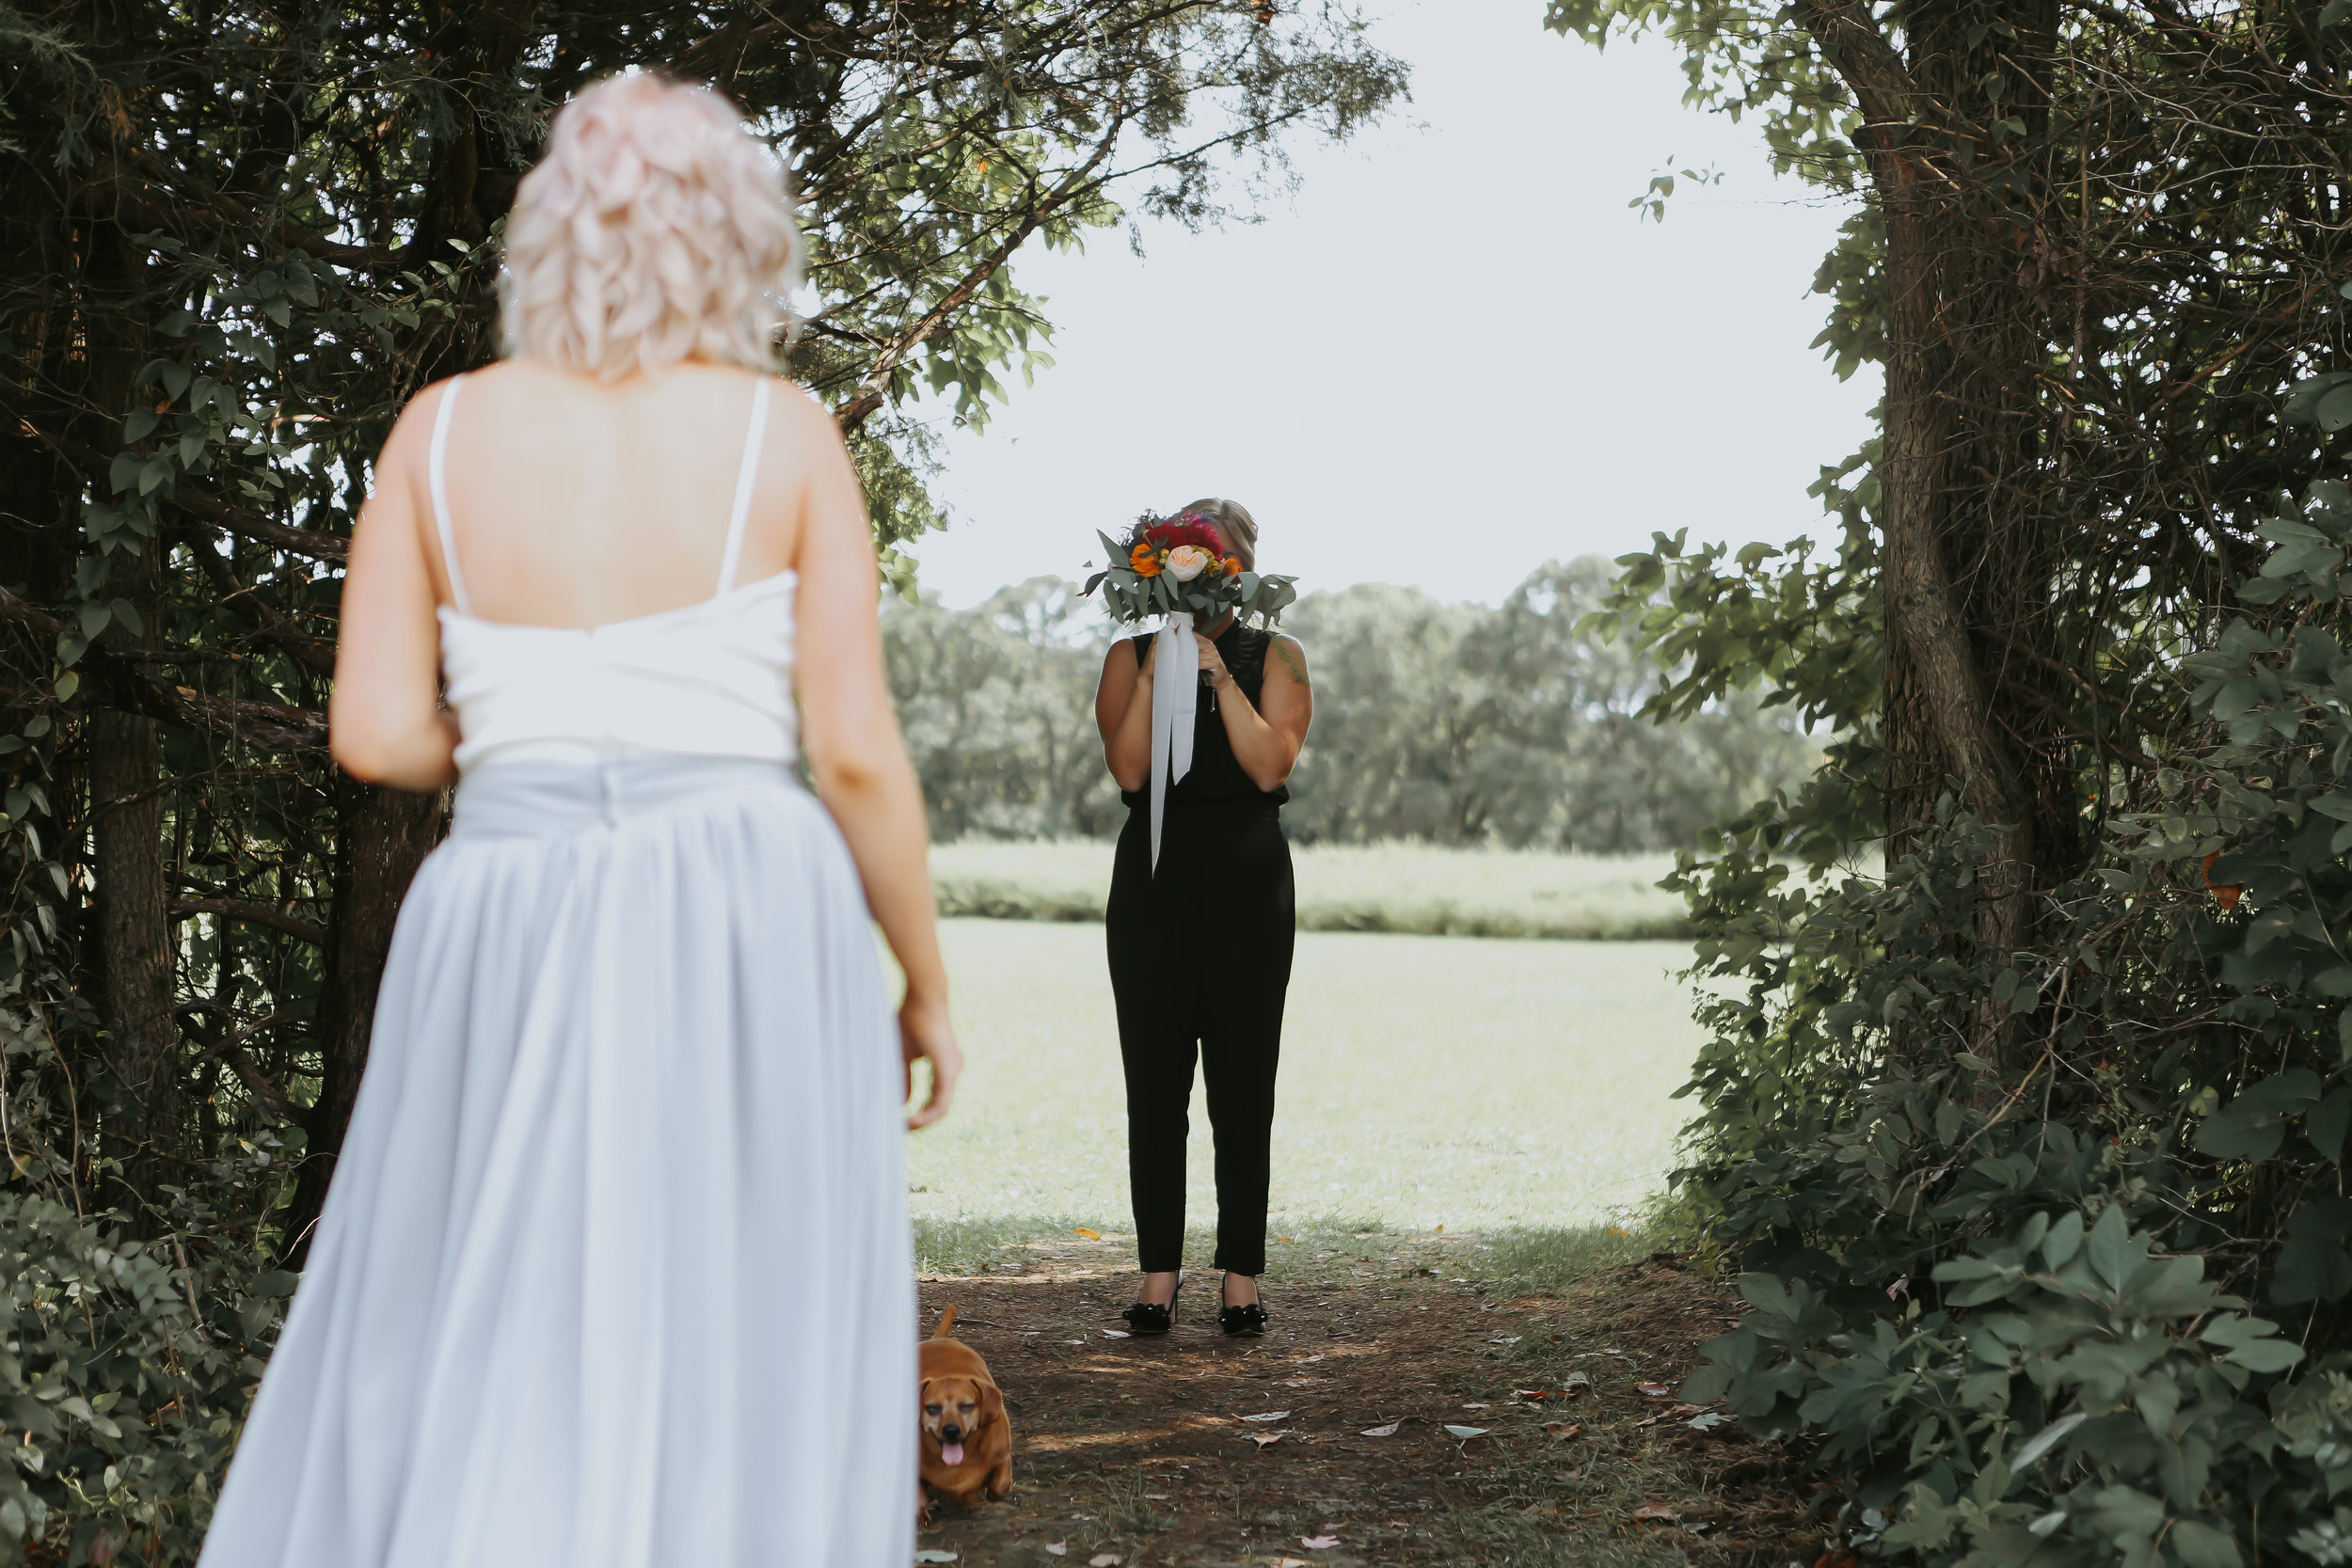 First look on a wedding day. Full service wedding planners help create up a comfortable, private, and meaningful first look.